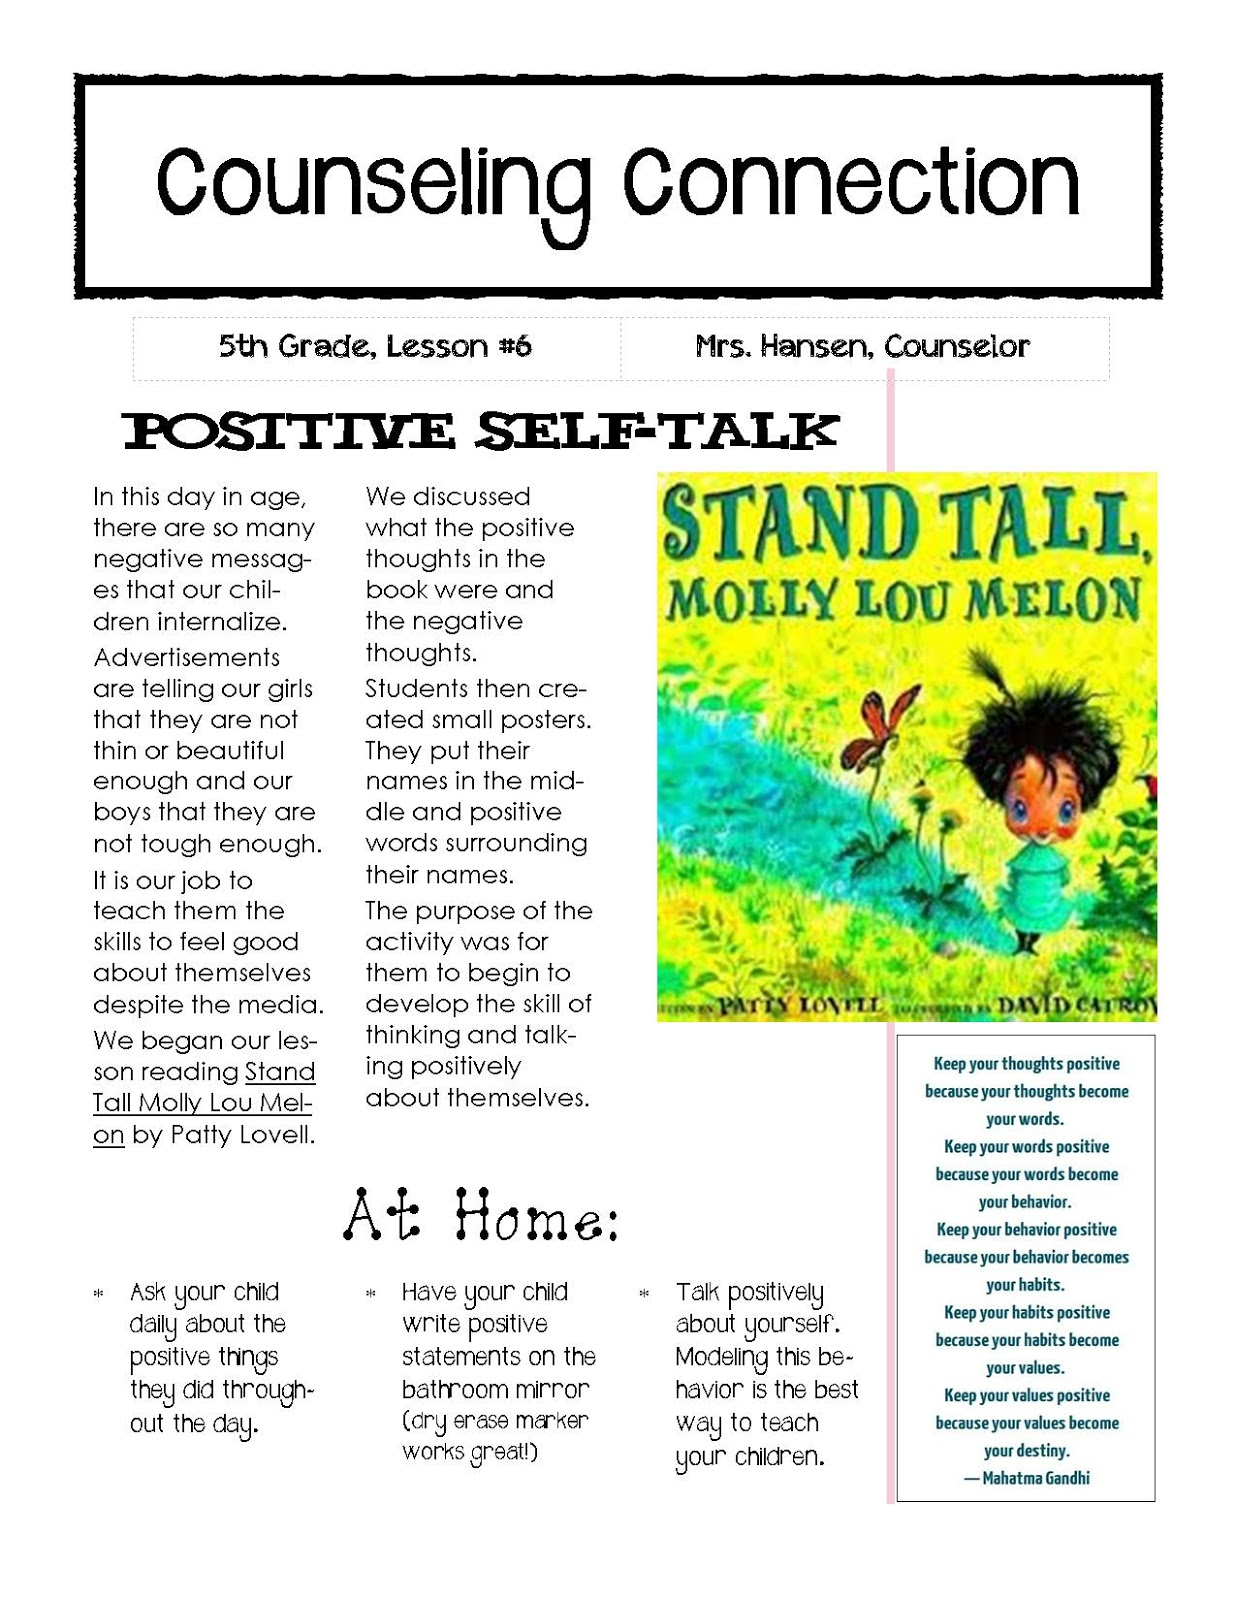 Hanselor The Counselor 5th Grade Lesson